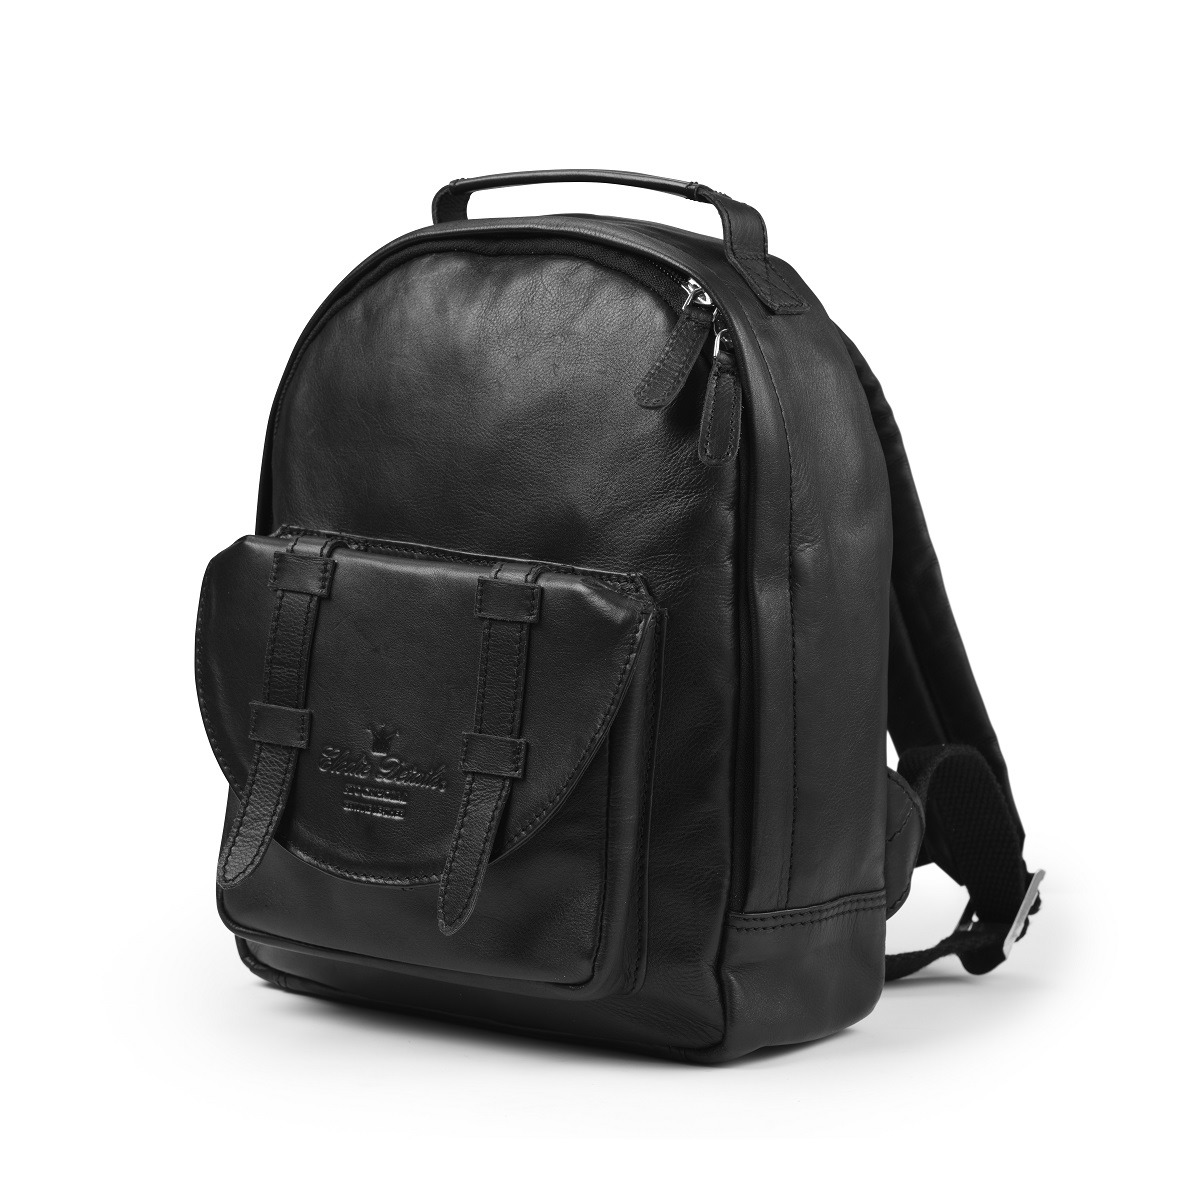 Elodie Details – BackPack MINI – Black Leather